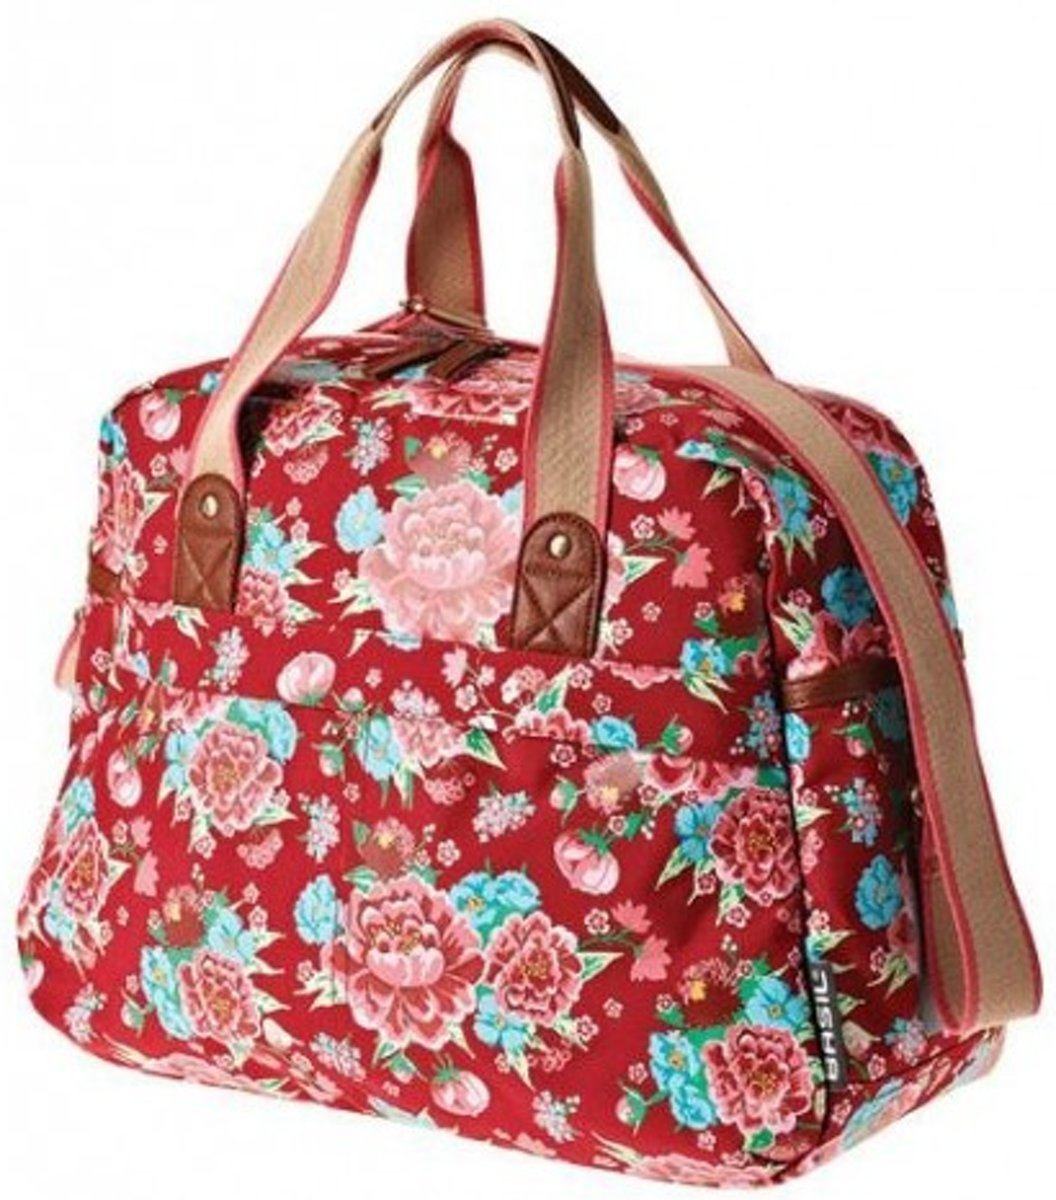 458f6046e19 bol.com | Basil Bloom Carry All Bag Enkele Fietstas - 18 l - Scarlet Rood